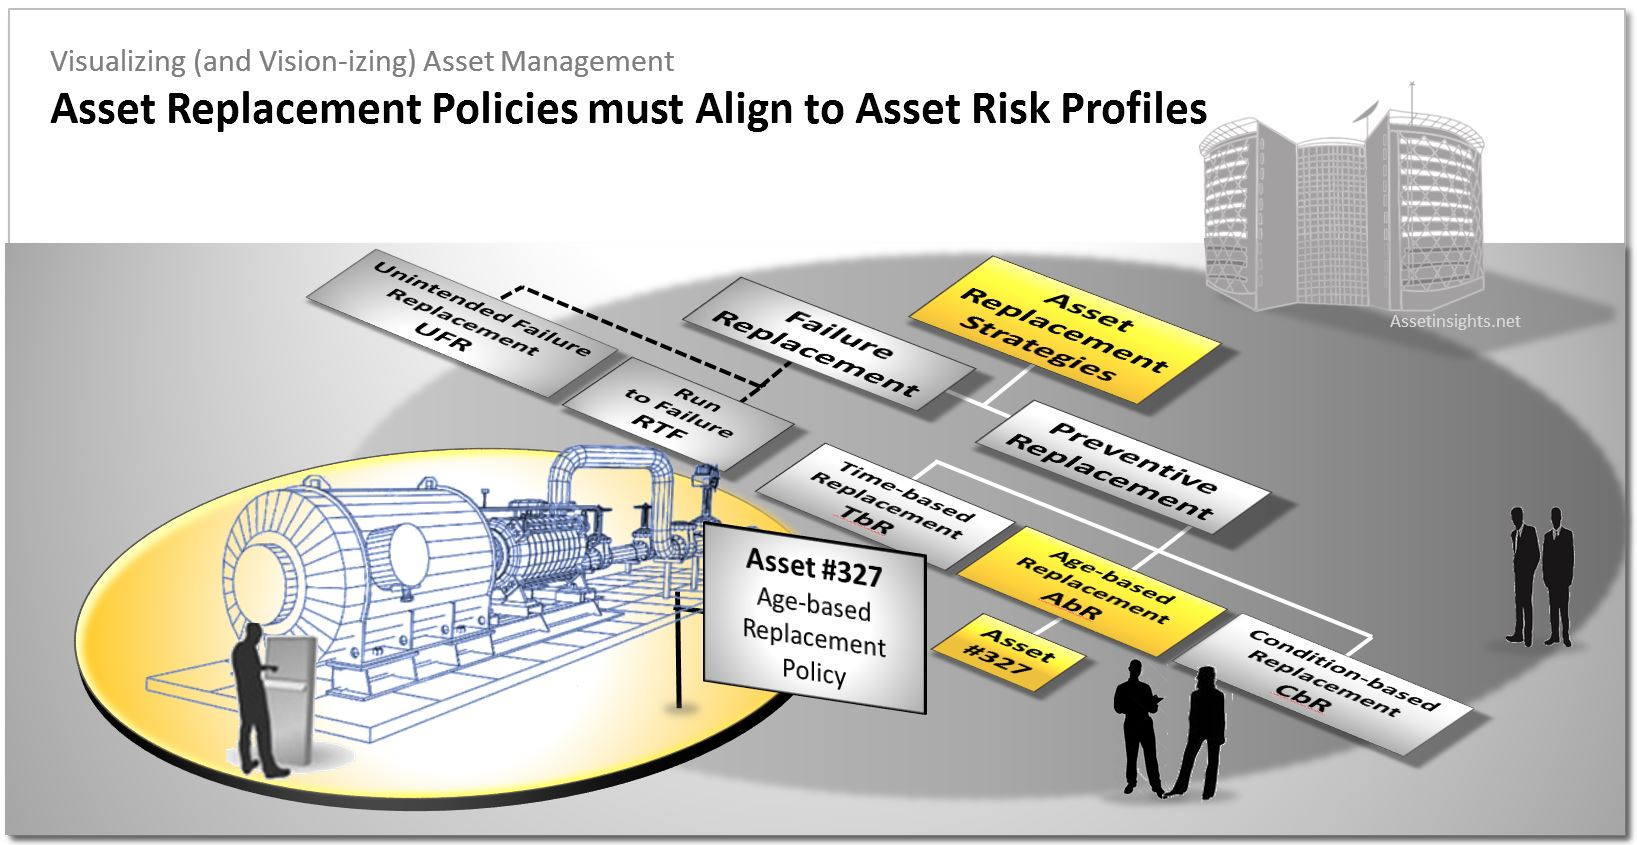 Asset replacement policies must align to asset risk profiles in order to achieve optimization and satisfy ISO 55001 requirements